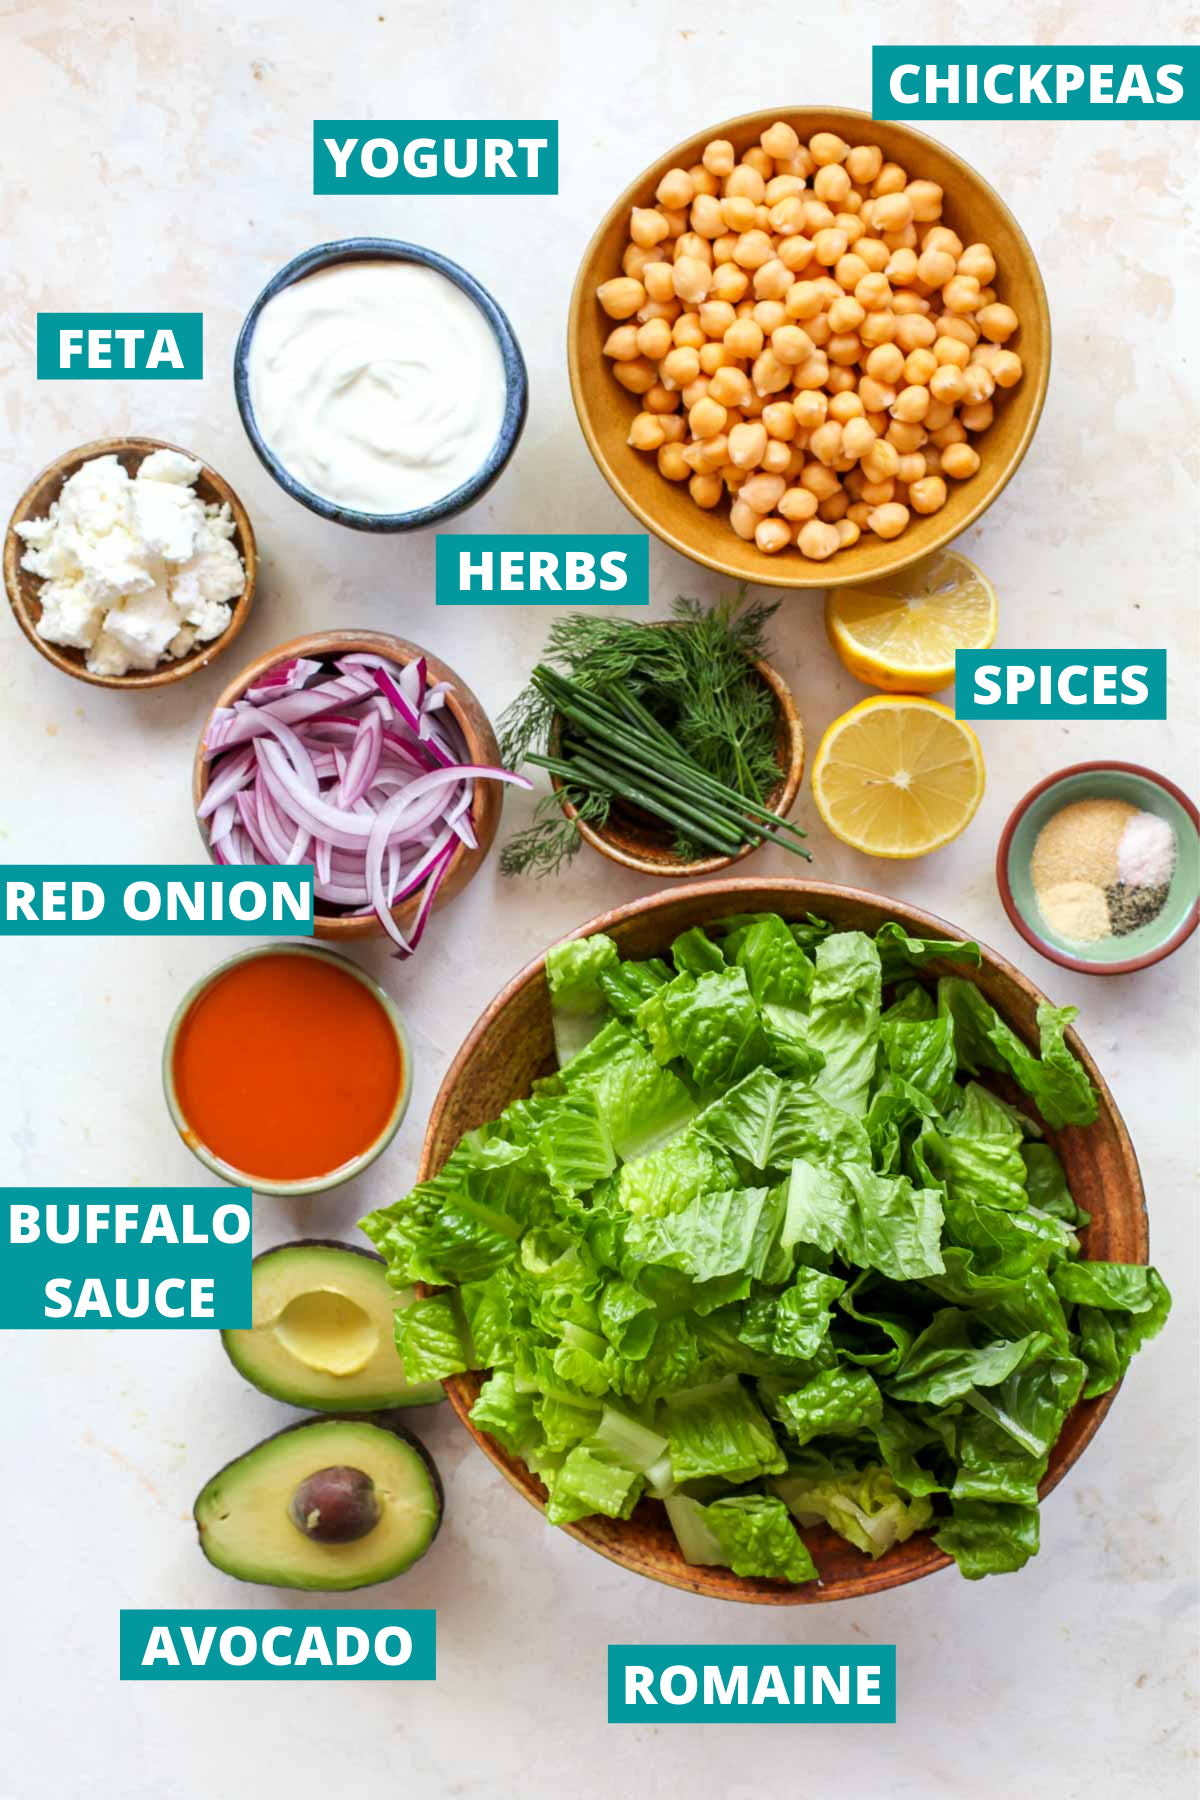 Chickpeas, lettuce, herbs, and avocado in separate bowls with blue ingredient labels